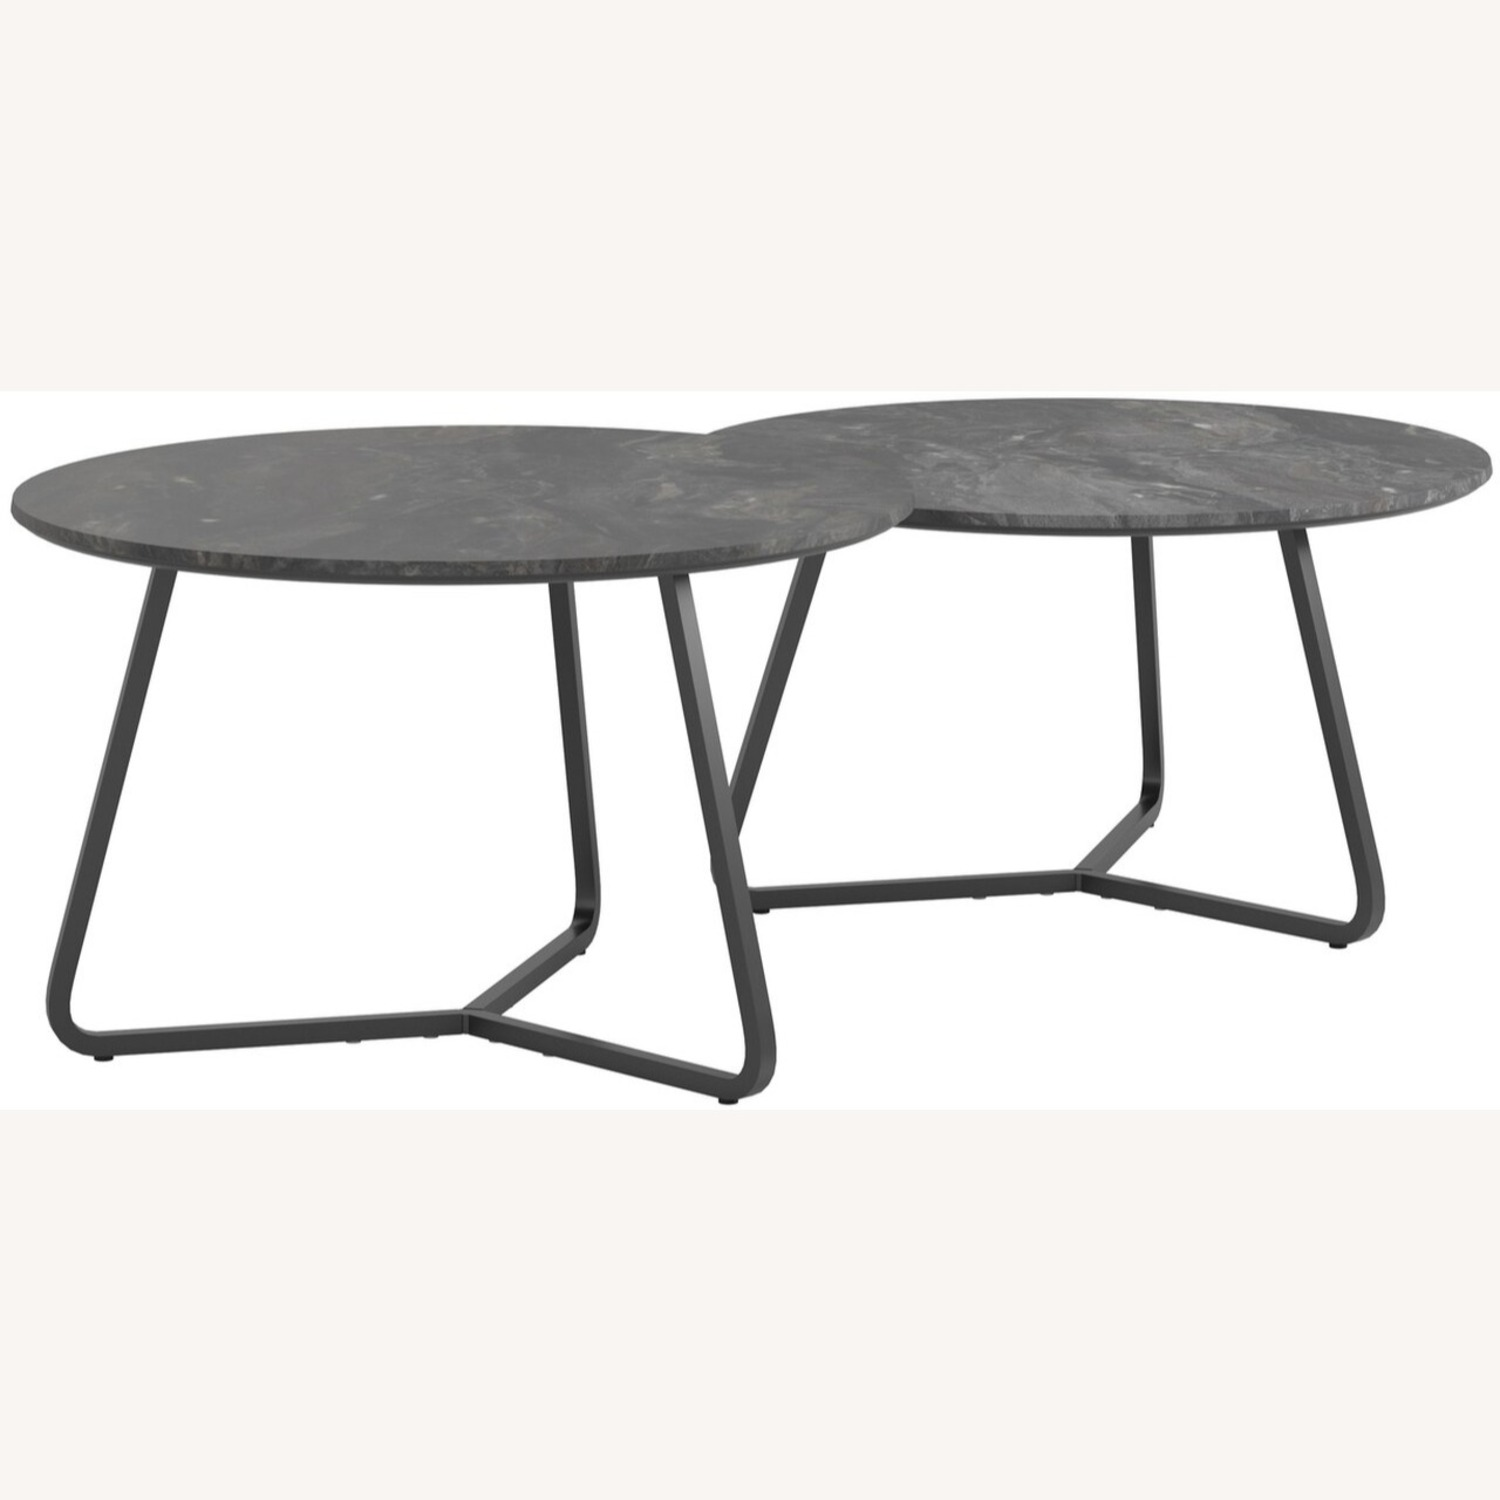 2-Piece Round Coffee Table In Matte Black Finish - image-0